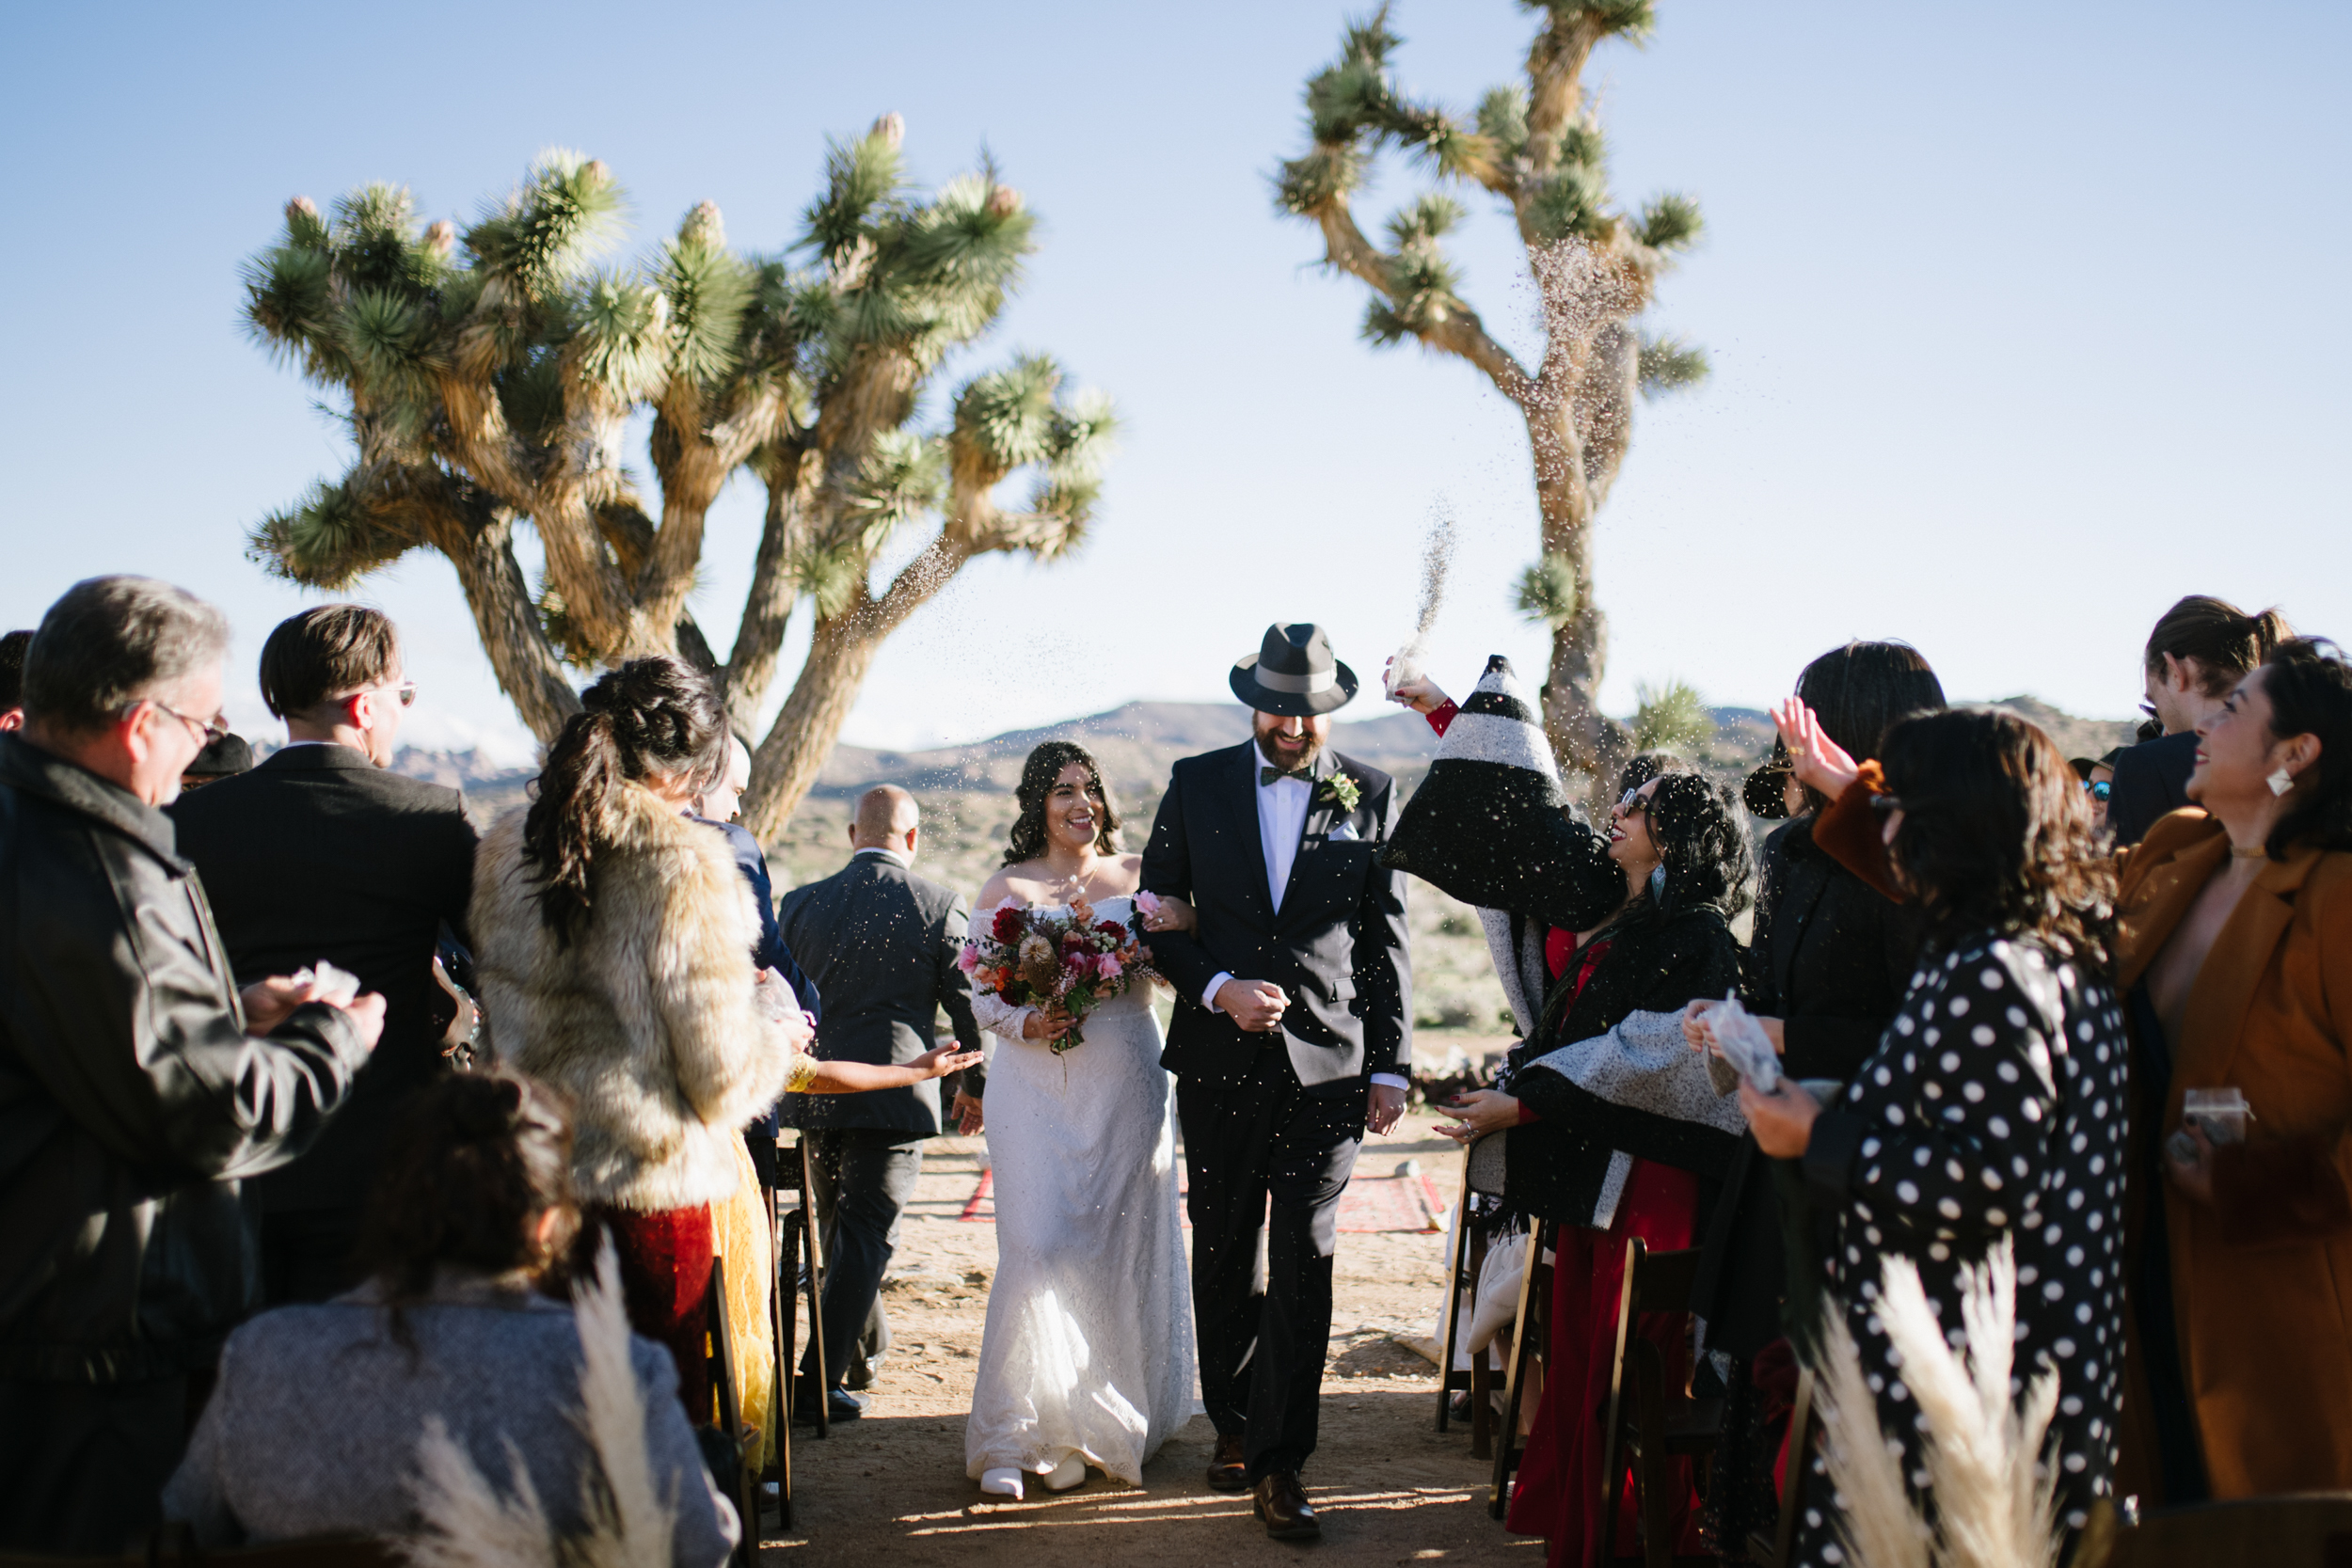 joshua_tree_wedding_rimrock_ranch-27.jpg